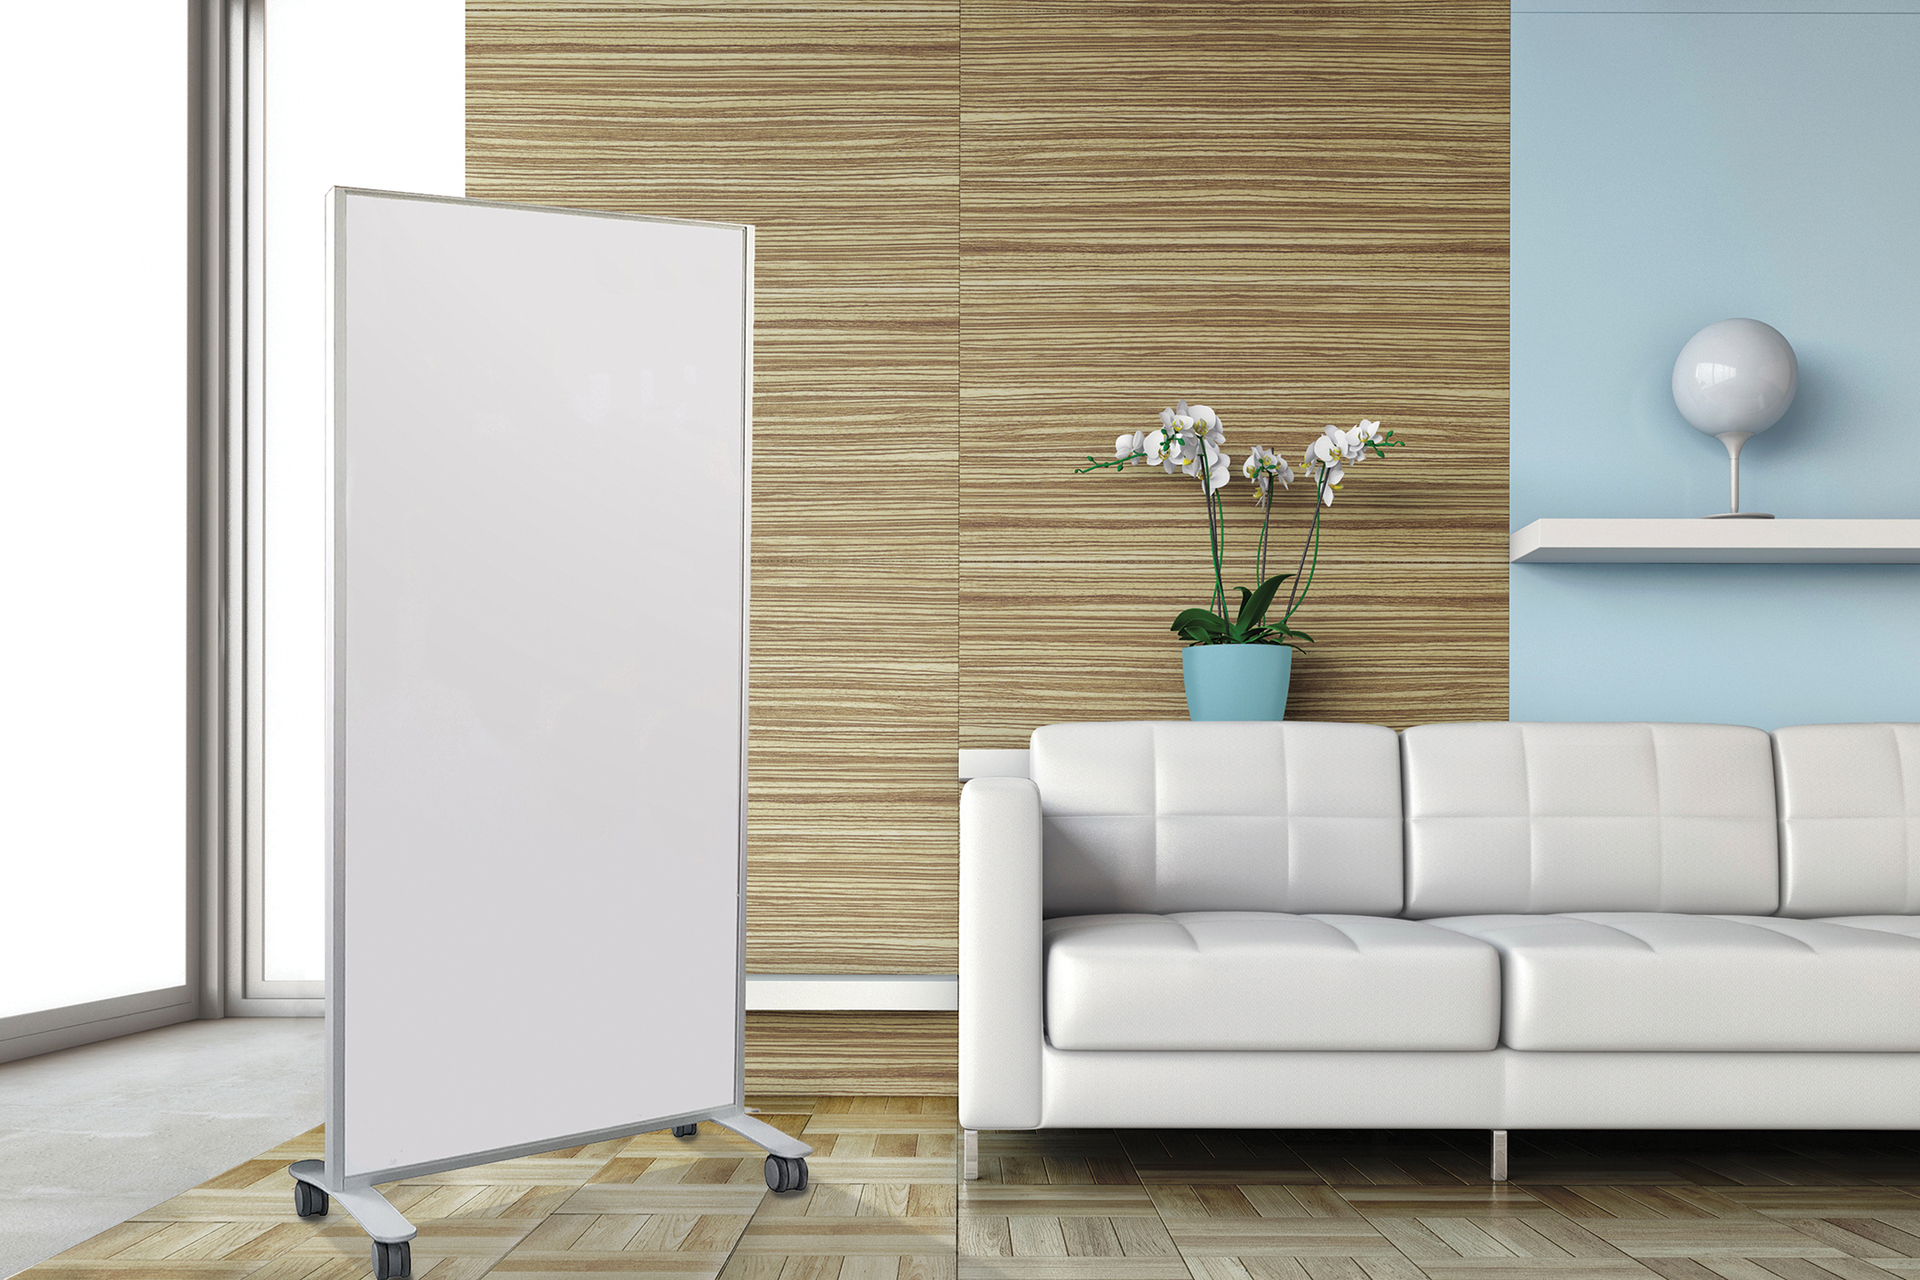 CONNECT® X2 Mobiles enhance the look of any space and are available in LCS3 Porcelain®, Claridge Glass and multiple Tackboard options. The stain anodized aluminum frame and feet can be customized with your choice of 180 optional powder coat colors.